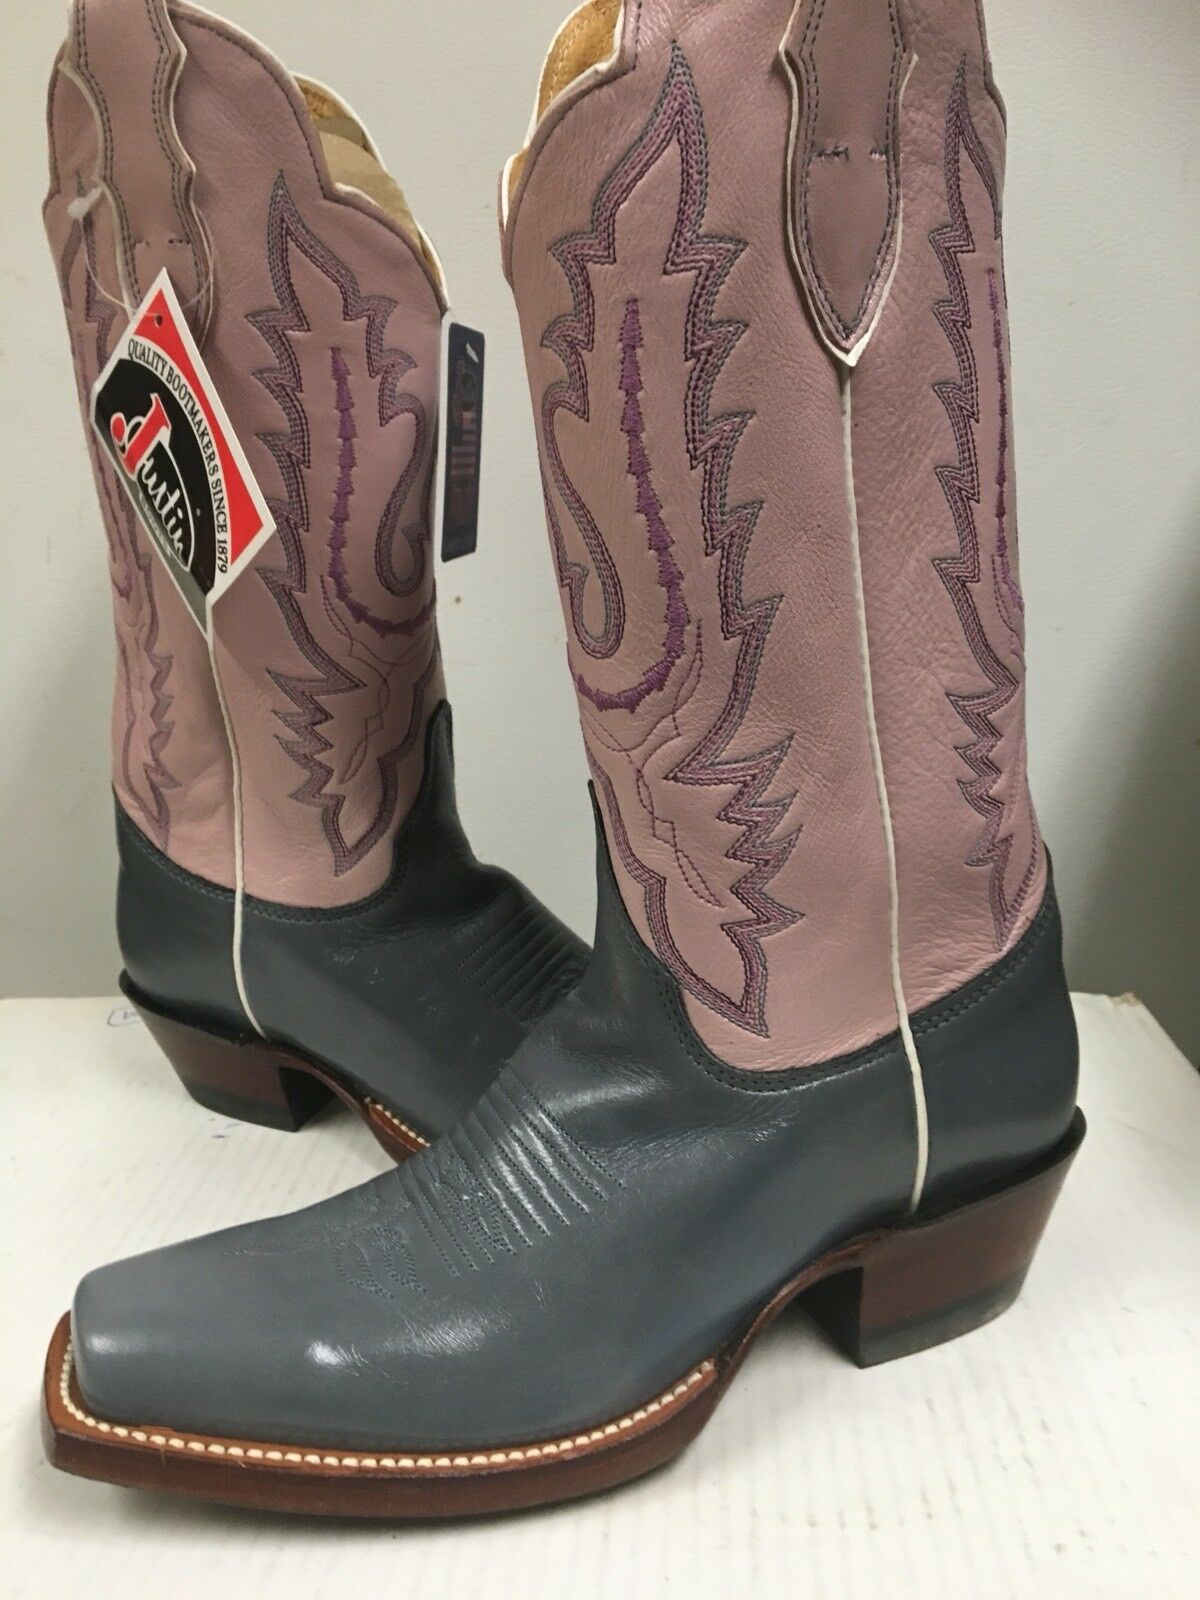 Justin Women's Western Leather    Boots  L2655 PINK LUCIOUS. L2655 SIZE 9 B NEW 2970bb